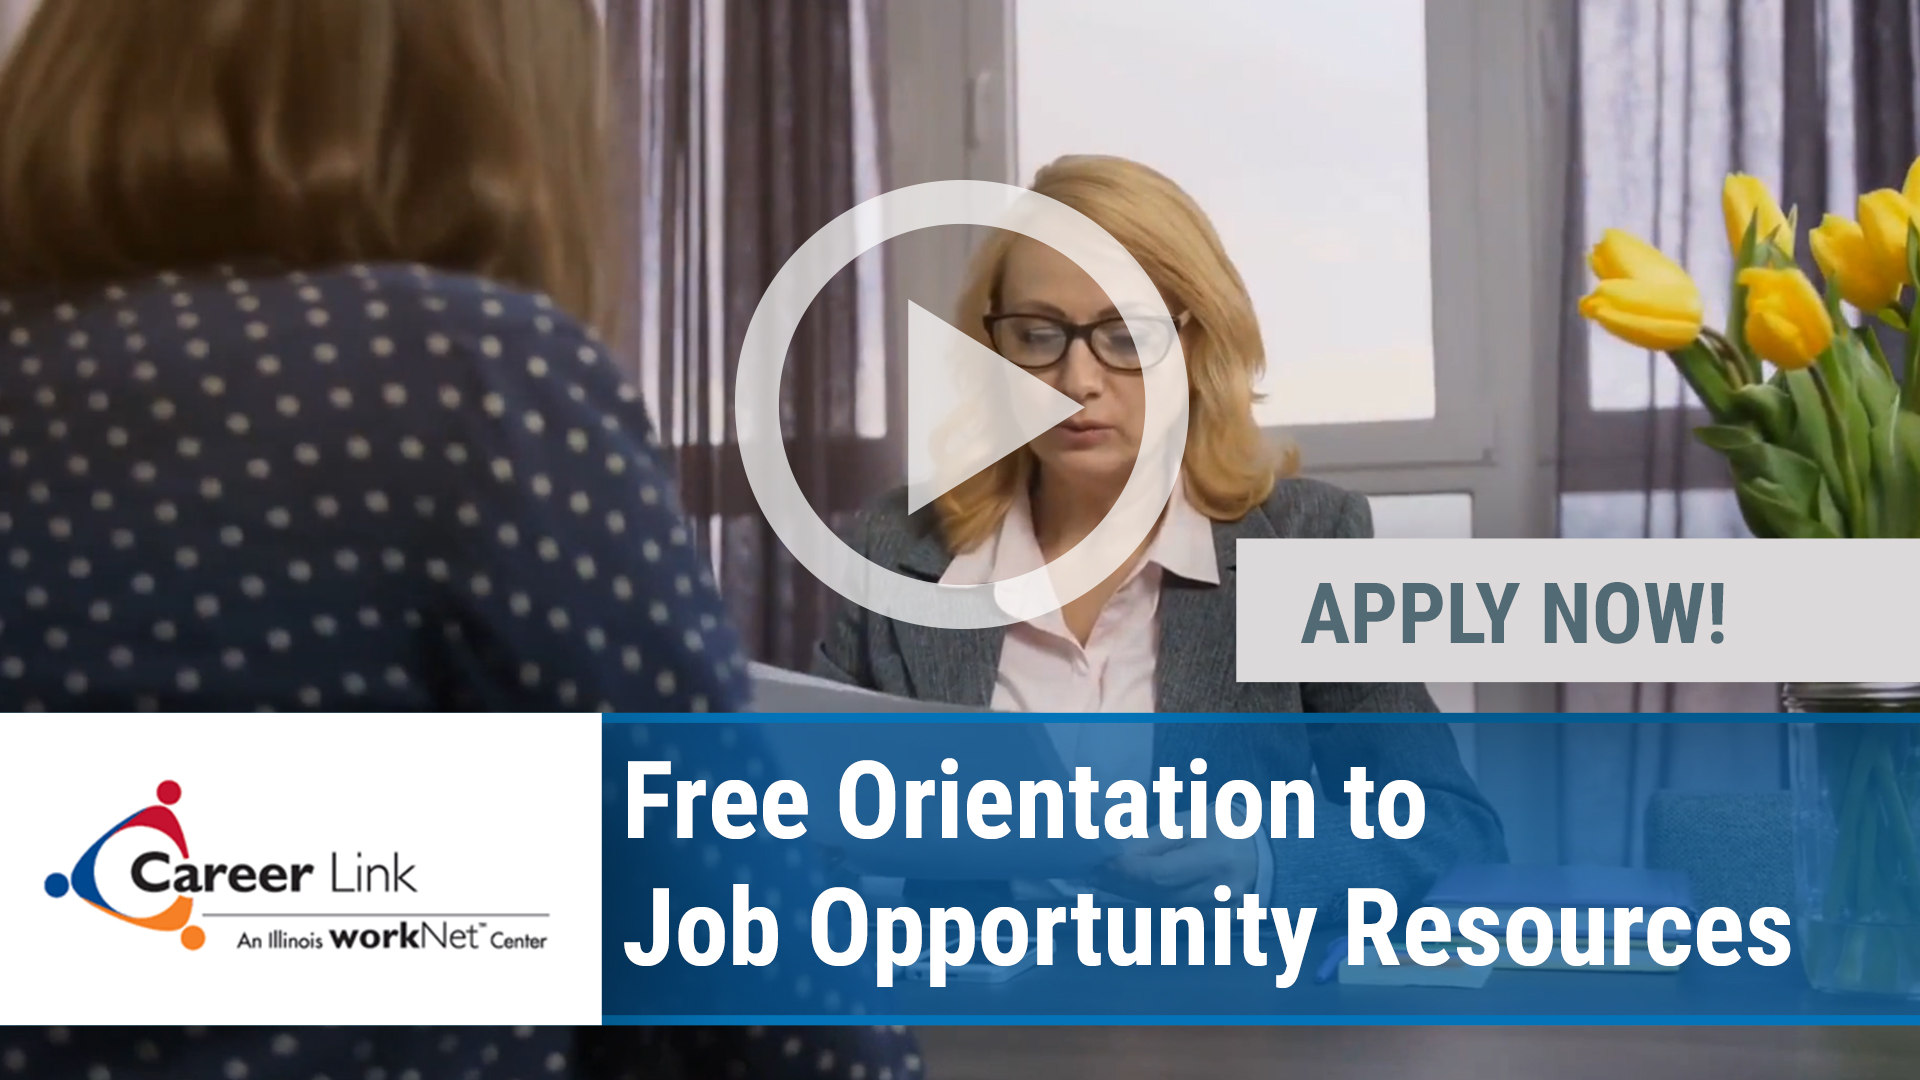 Watch our careers video for available job opening Free Orientation to Job Opportunity Resources in Peoria, IL